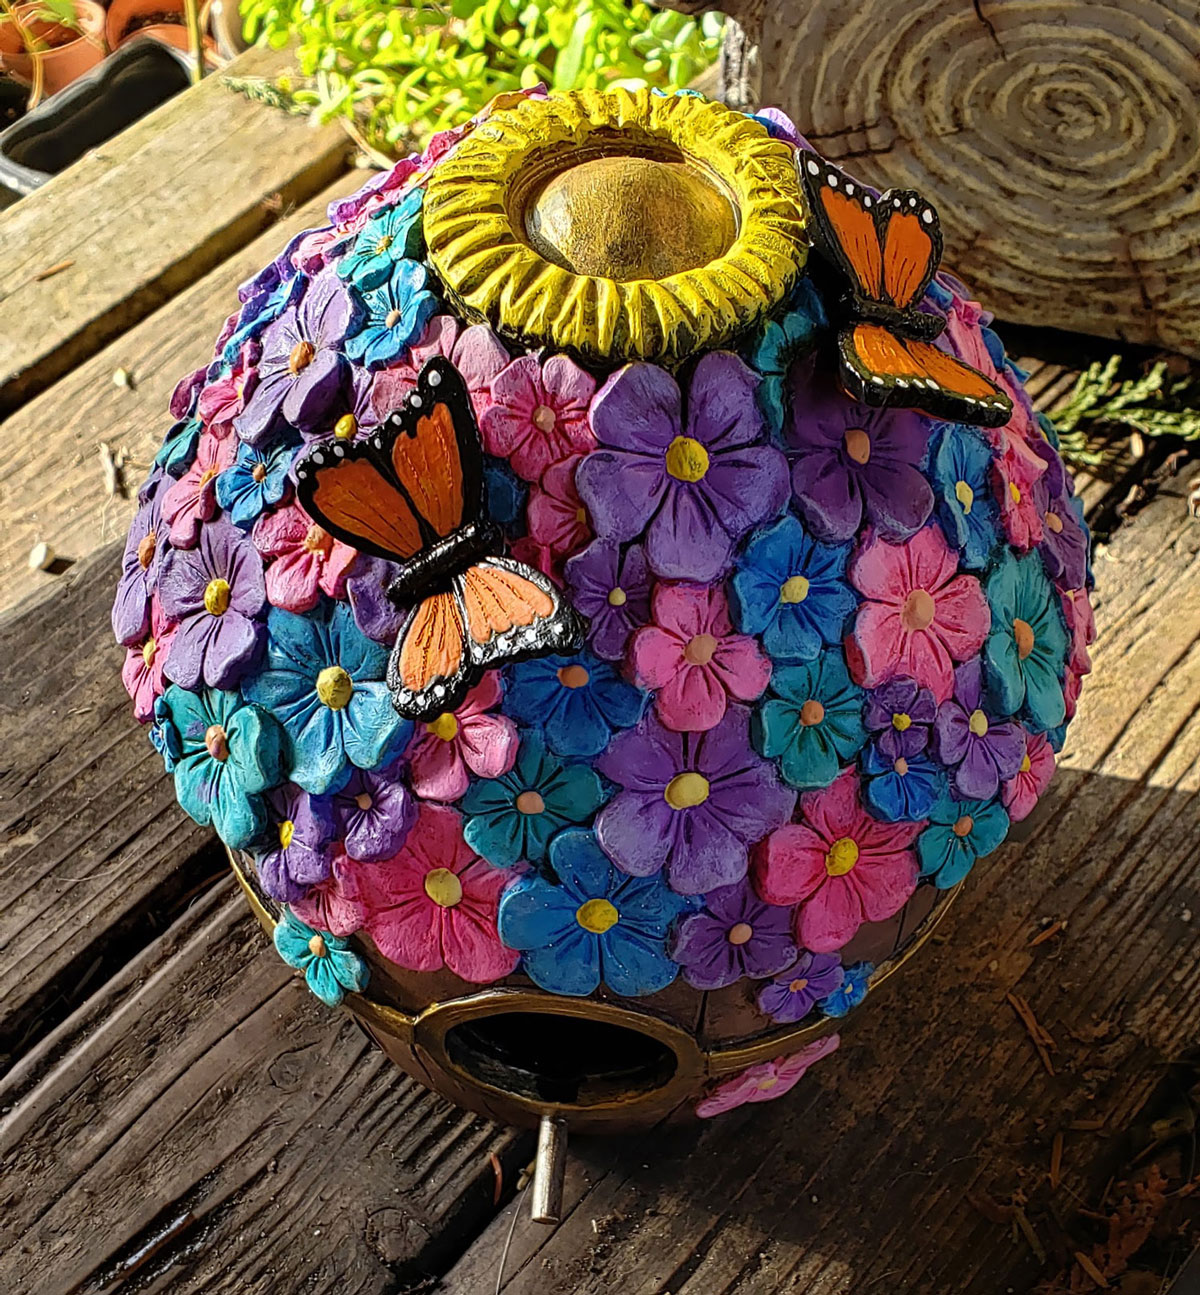 Top view of the finished flower barrel birdhouse with butterflies